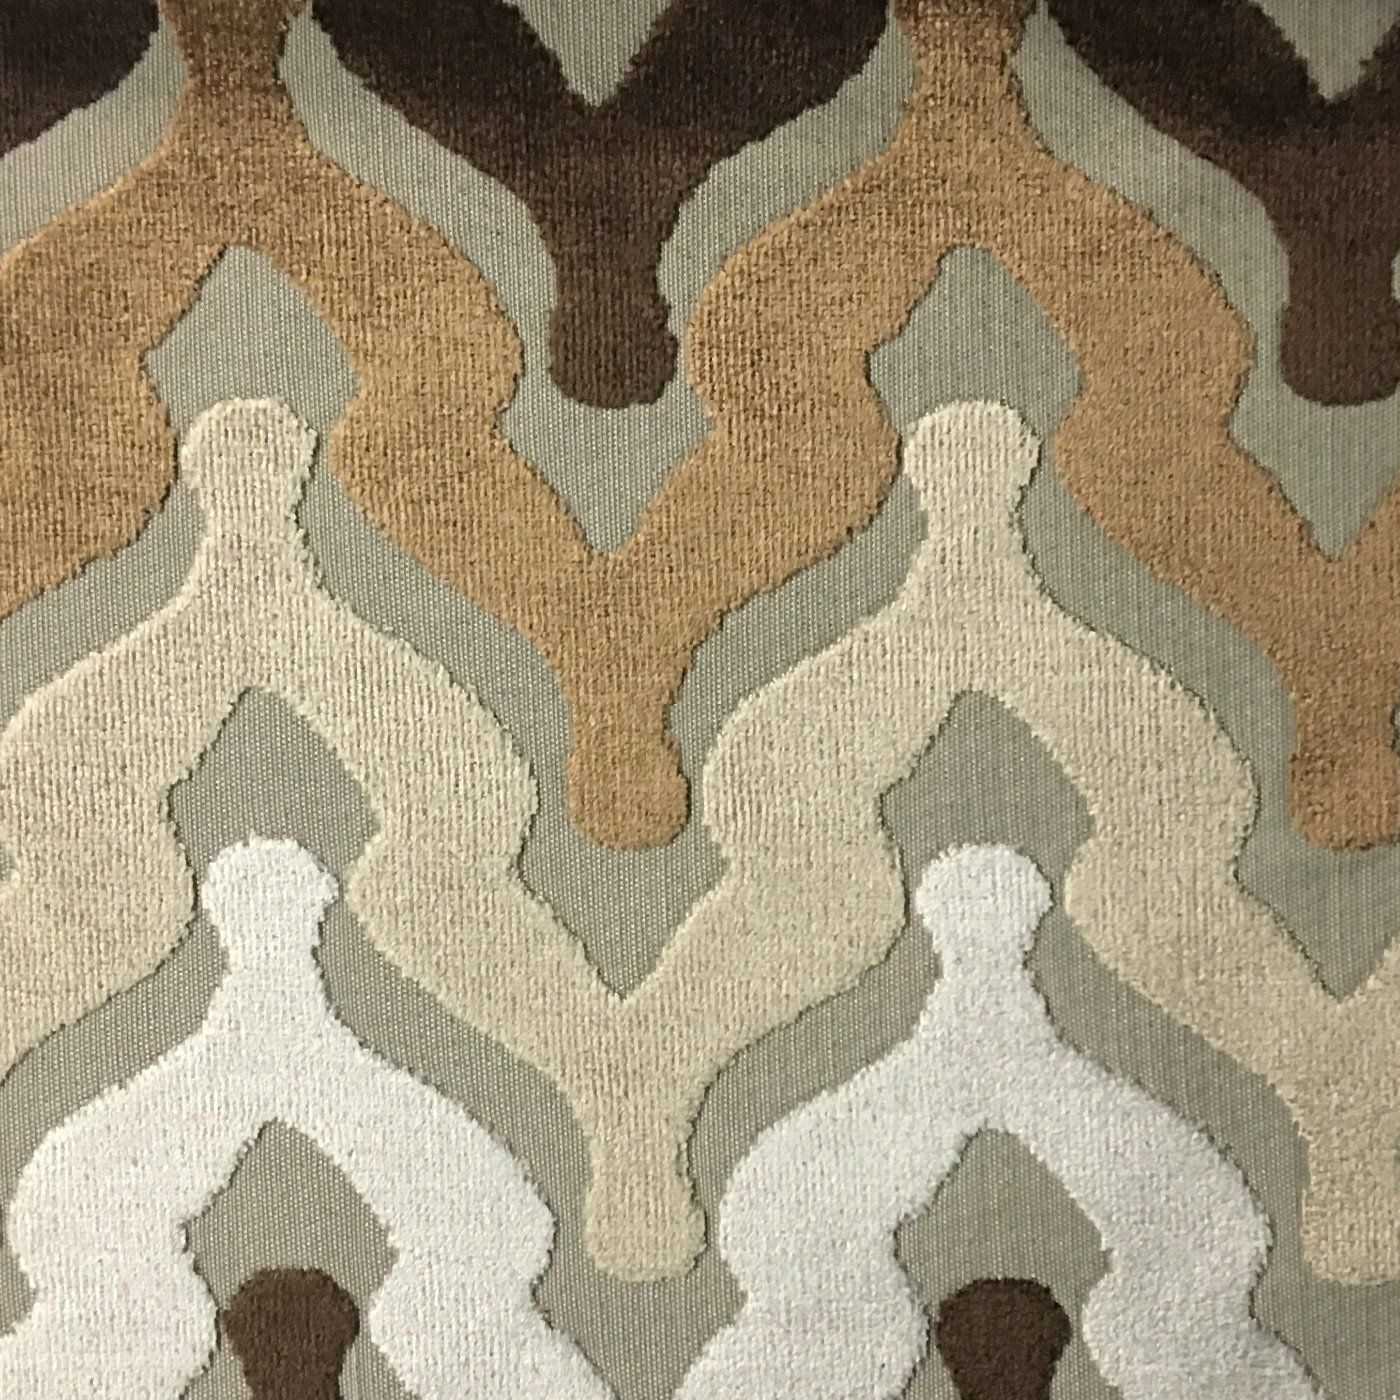 Leicester Bold Chevron Cut Velvet Upholstery Fabric by the Yard